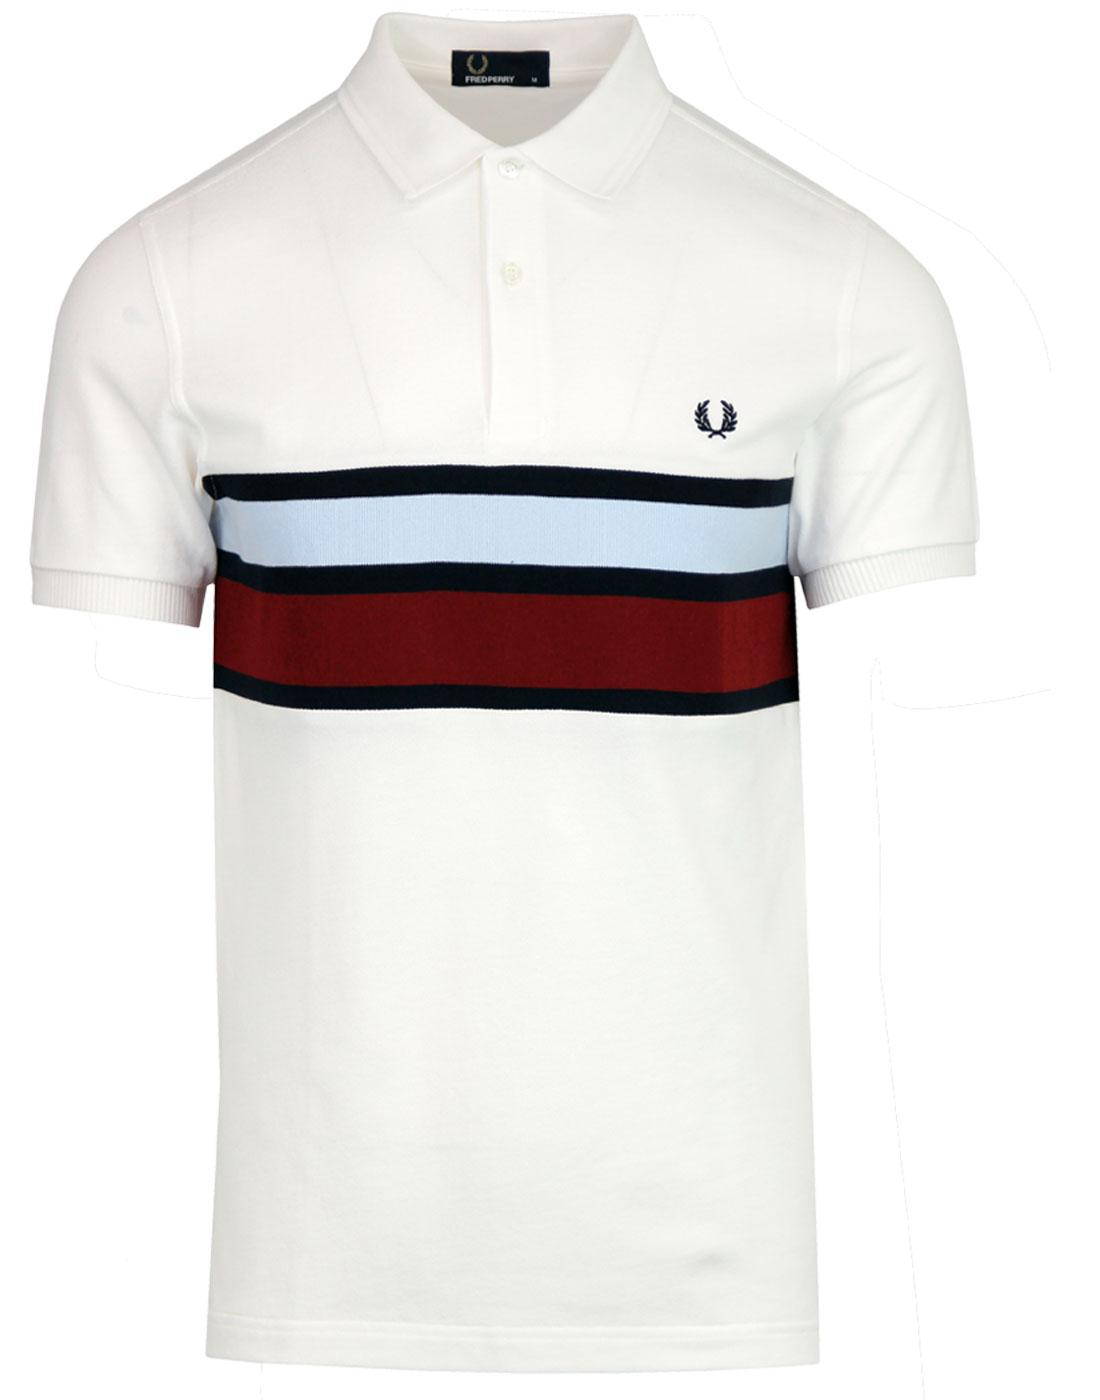 FRED PERRY Men's Mod Stripe Panel Pique Polo Shirt